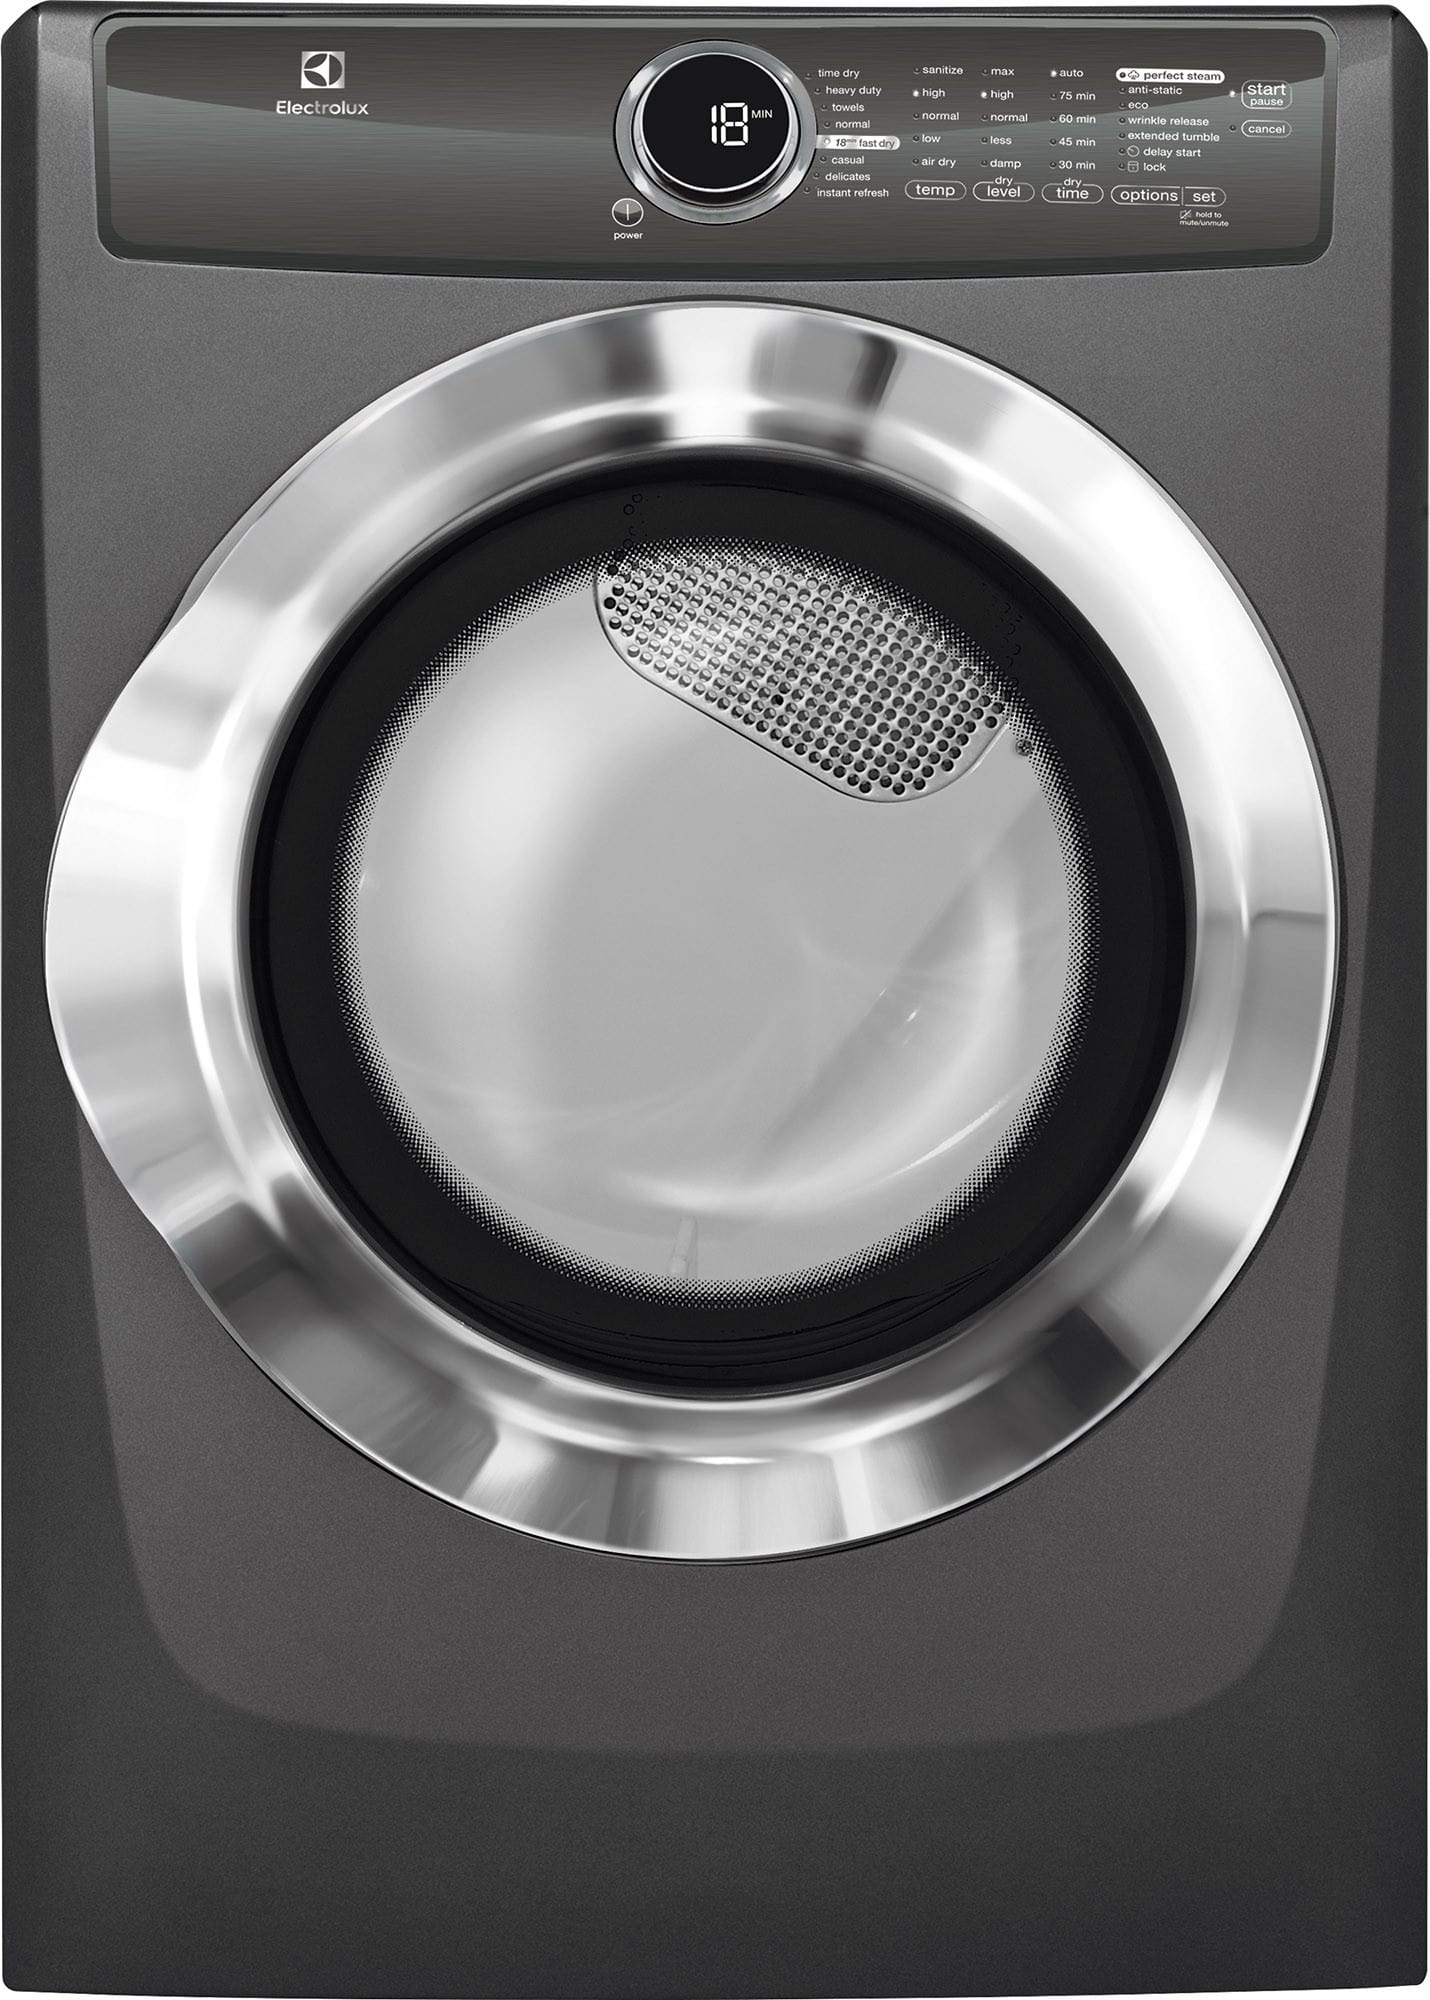 ajmadison smartboost pedestal wash load luxcare with ft perfect system for stainsoak bin technology inch cu steam electrolux washer option front vibrant cgi